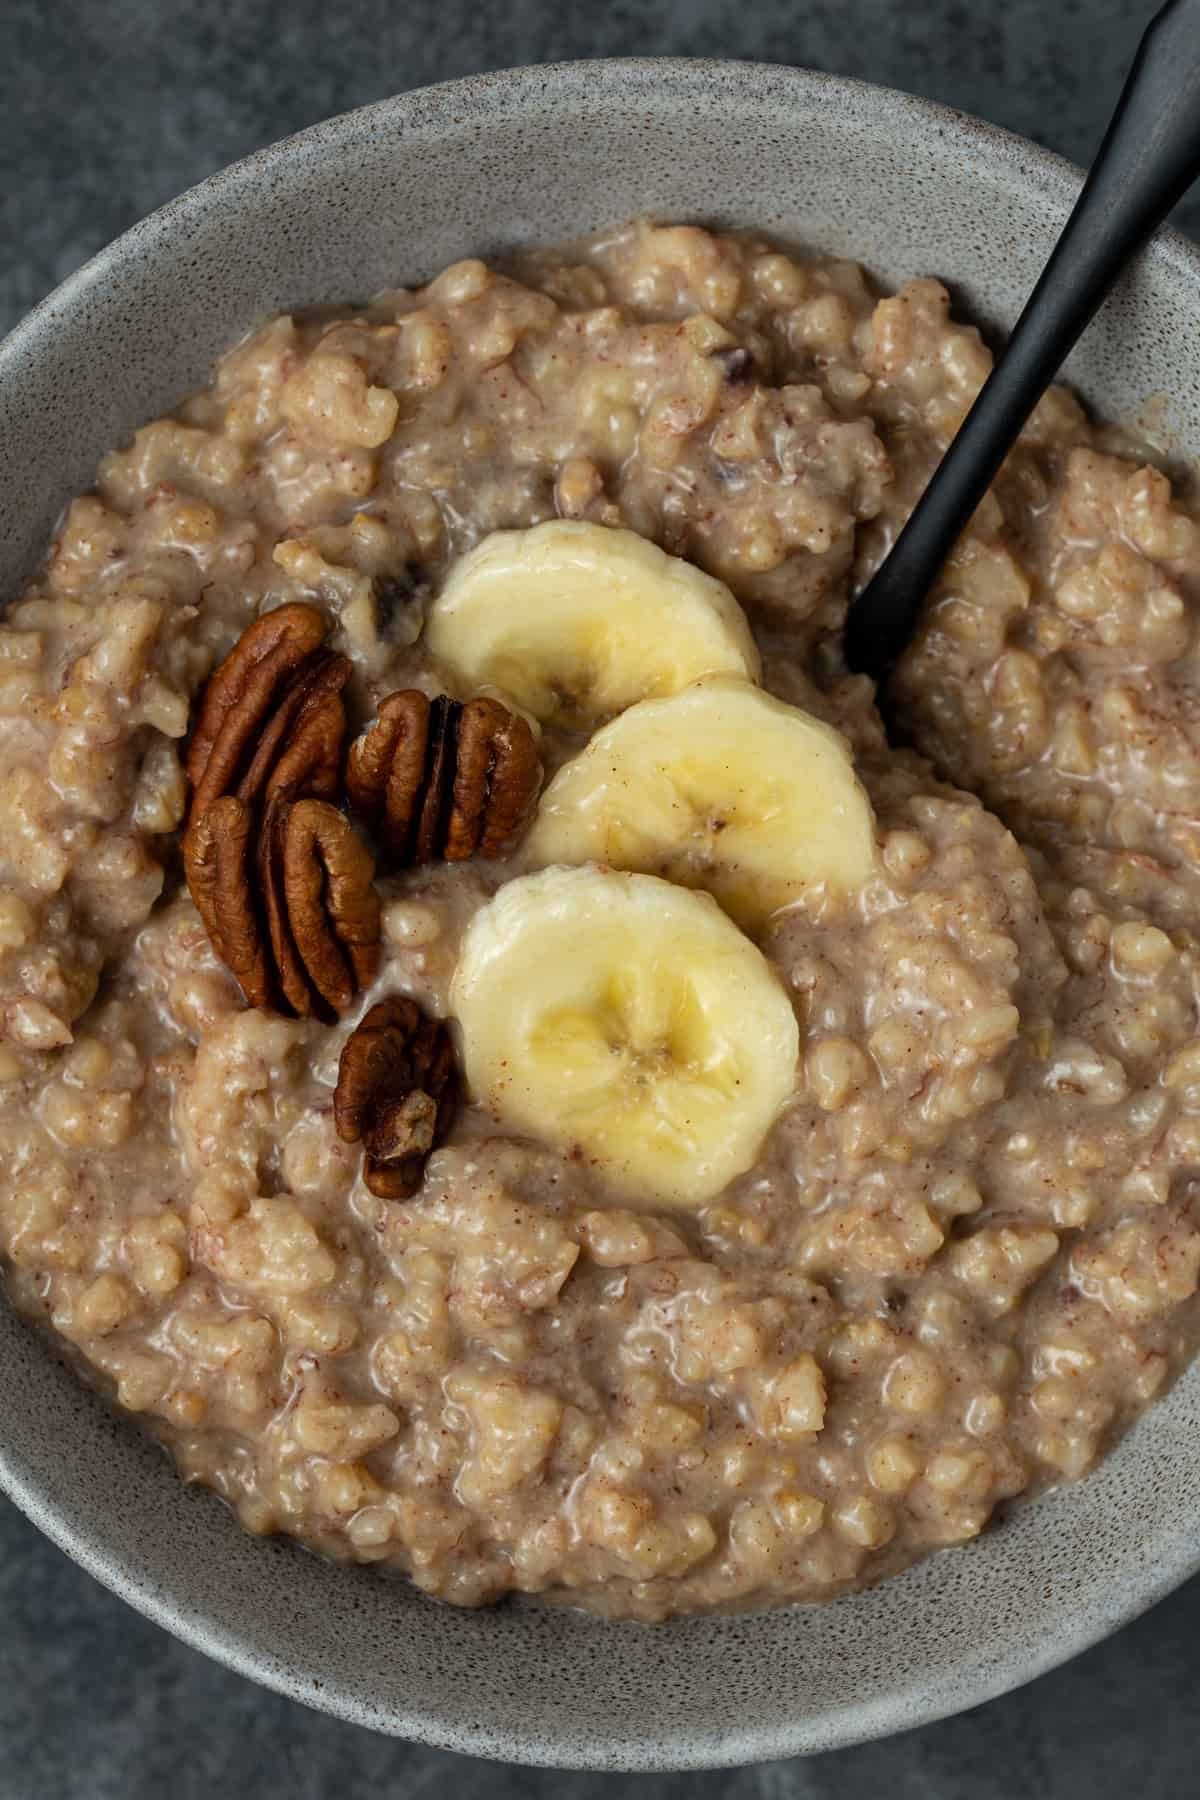 Gray bowl filled with Slow Cooker Steel Cut Oats with Bananas.